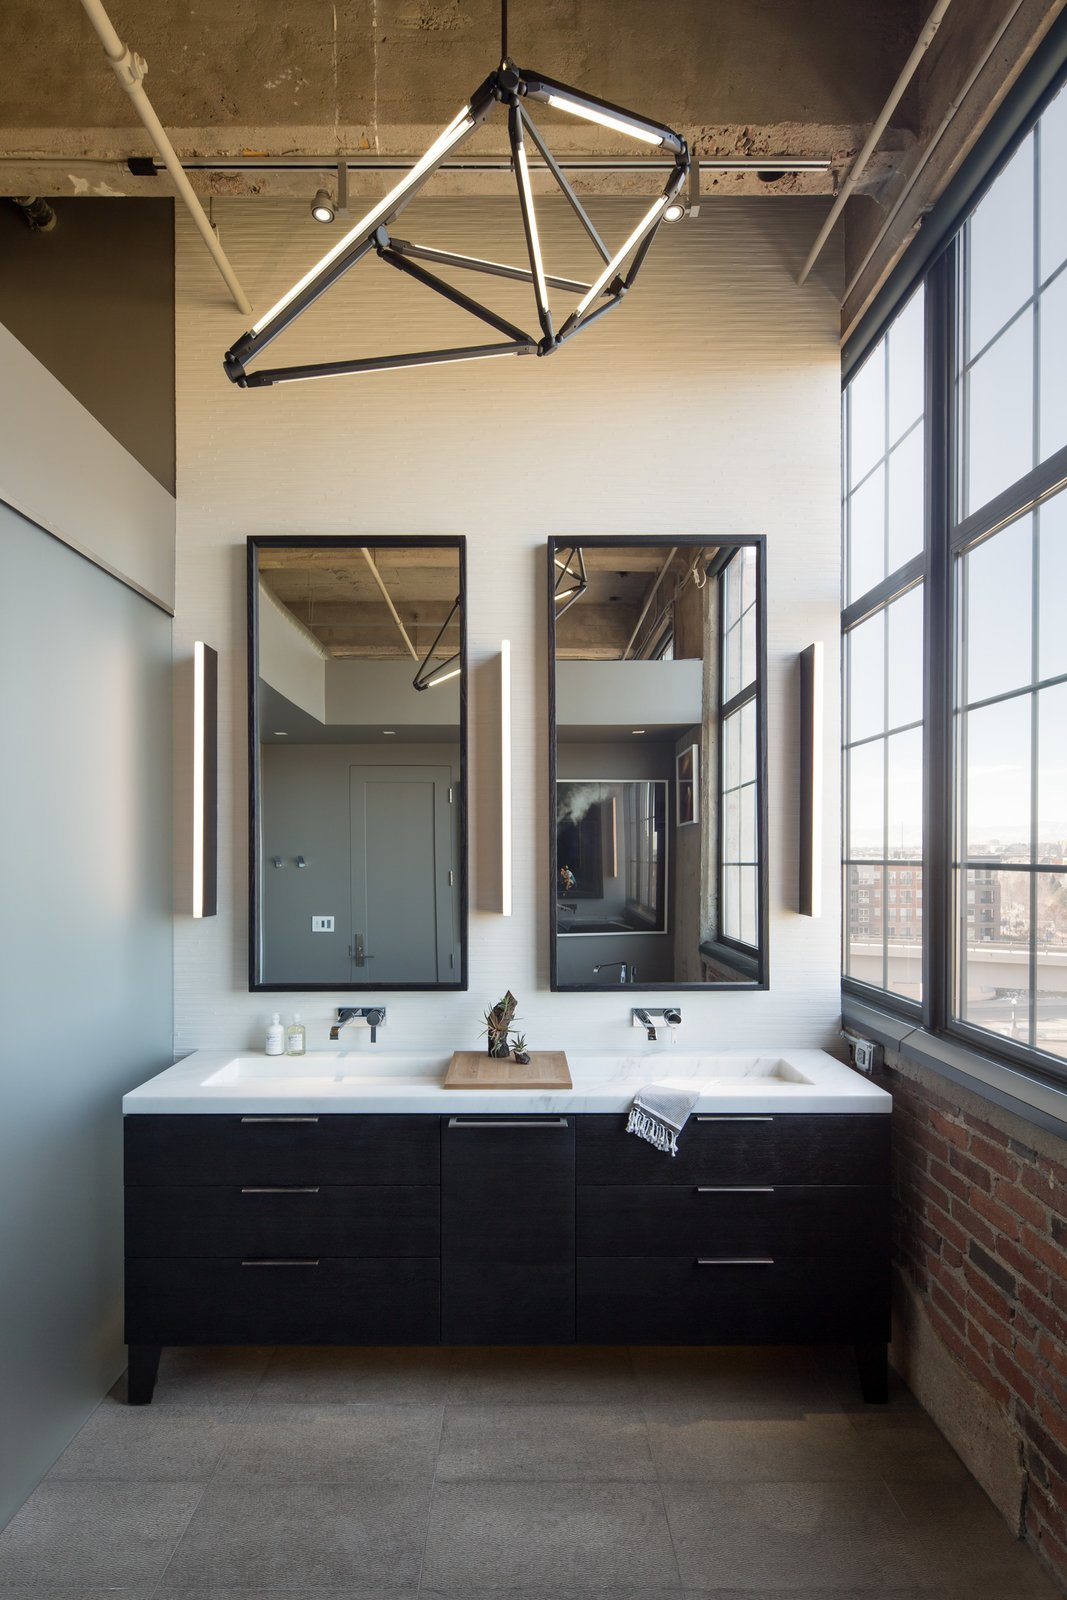 A SHY 04 pendant light from Bec Brittain adorns the master bath. The custom vanity is made from oak charred with Shou sugi ban. The fixtures are Grohe.  Industrial Loft in a Former Flour Mill by Allie Weiss